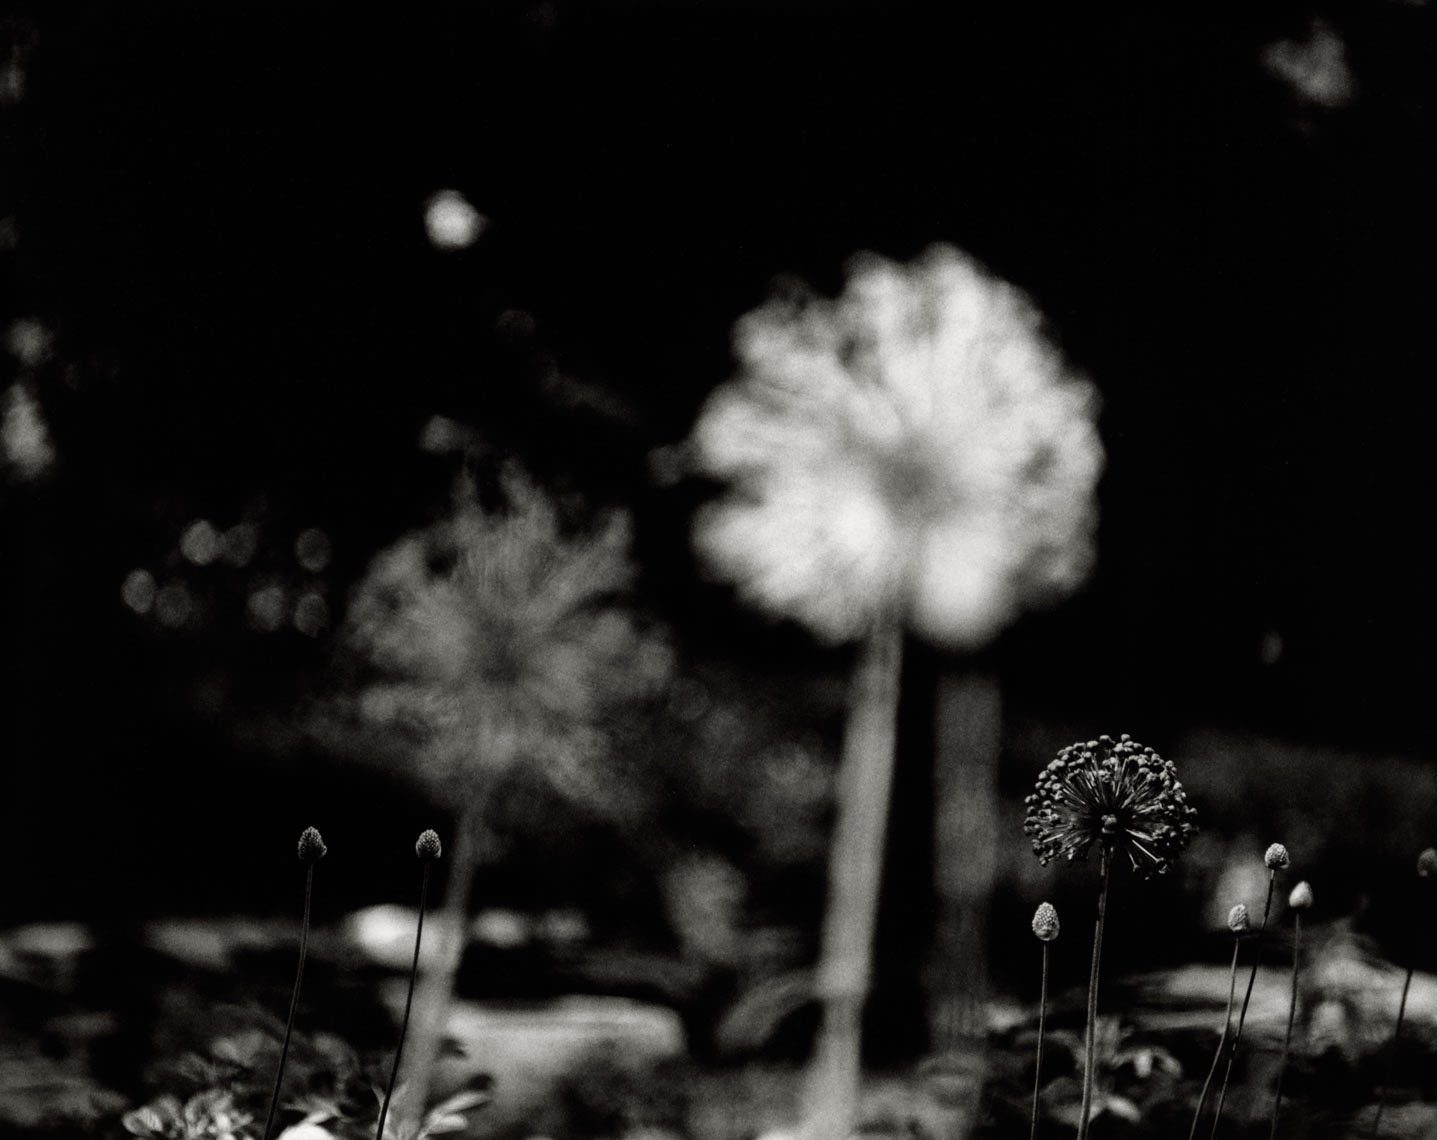 David Lebe; Alliums, 1996, garden black and white photograph